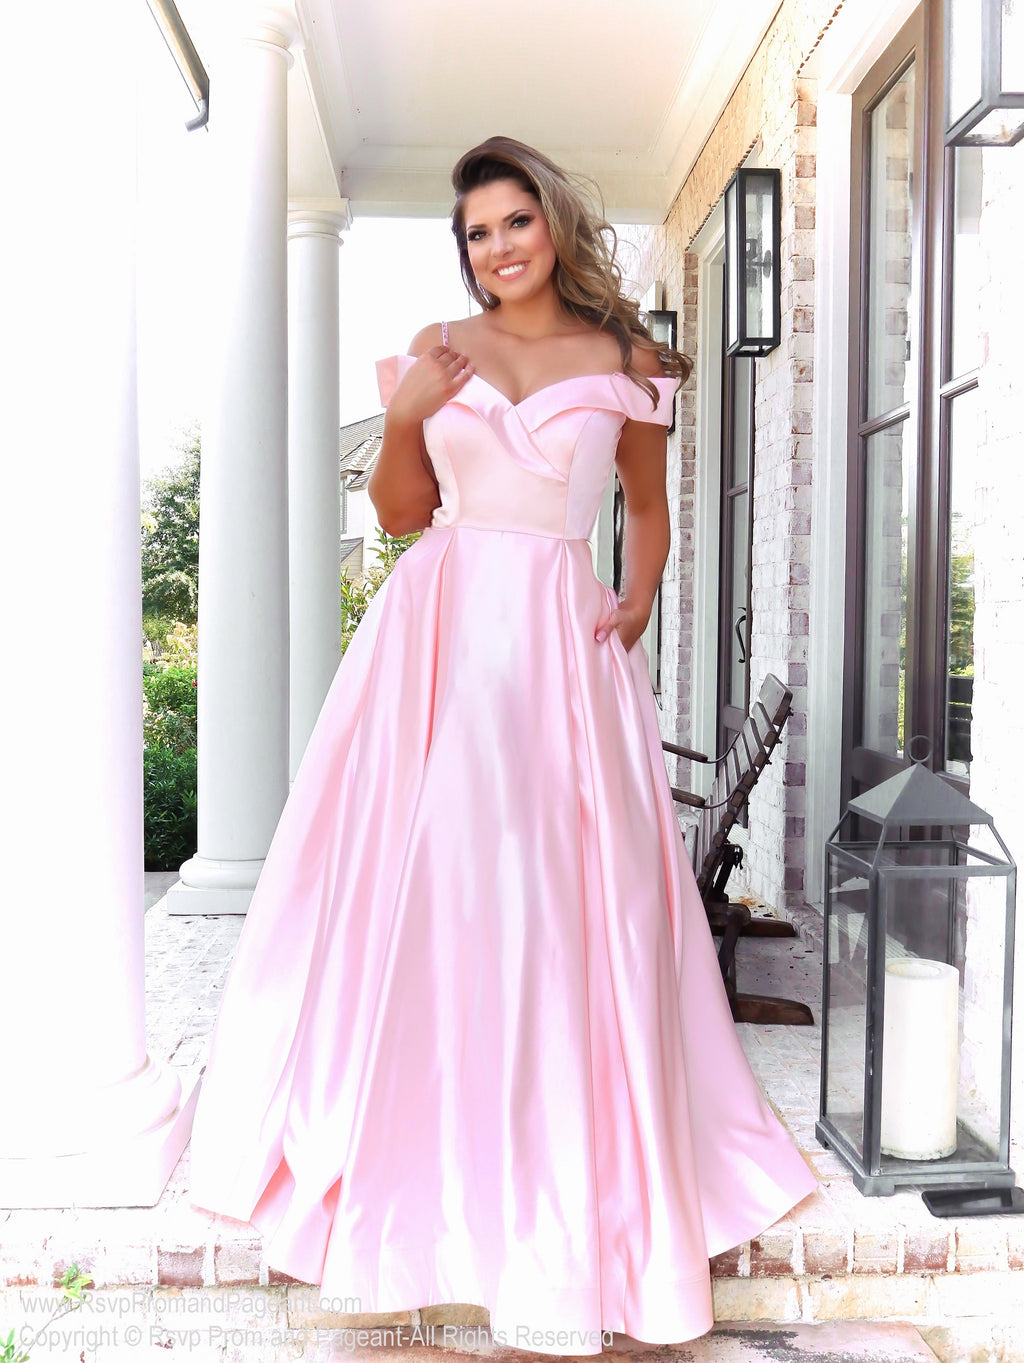 Model in a gorgeous satin ball gown featuring off the shoulder straps, a sweetheart neckline and full flowing skirt with pockets! And it's at Rsvp Prom and Pageant, your source for the HOTTEST Prom and Pageant Dresses and exclusive evening gowns and located in Atlanta, Georgia!